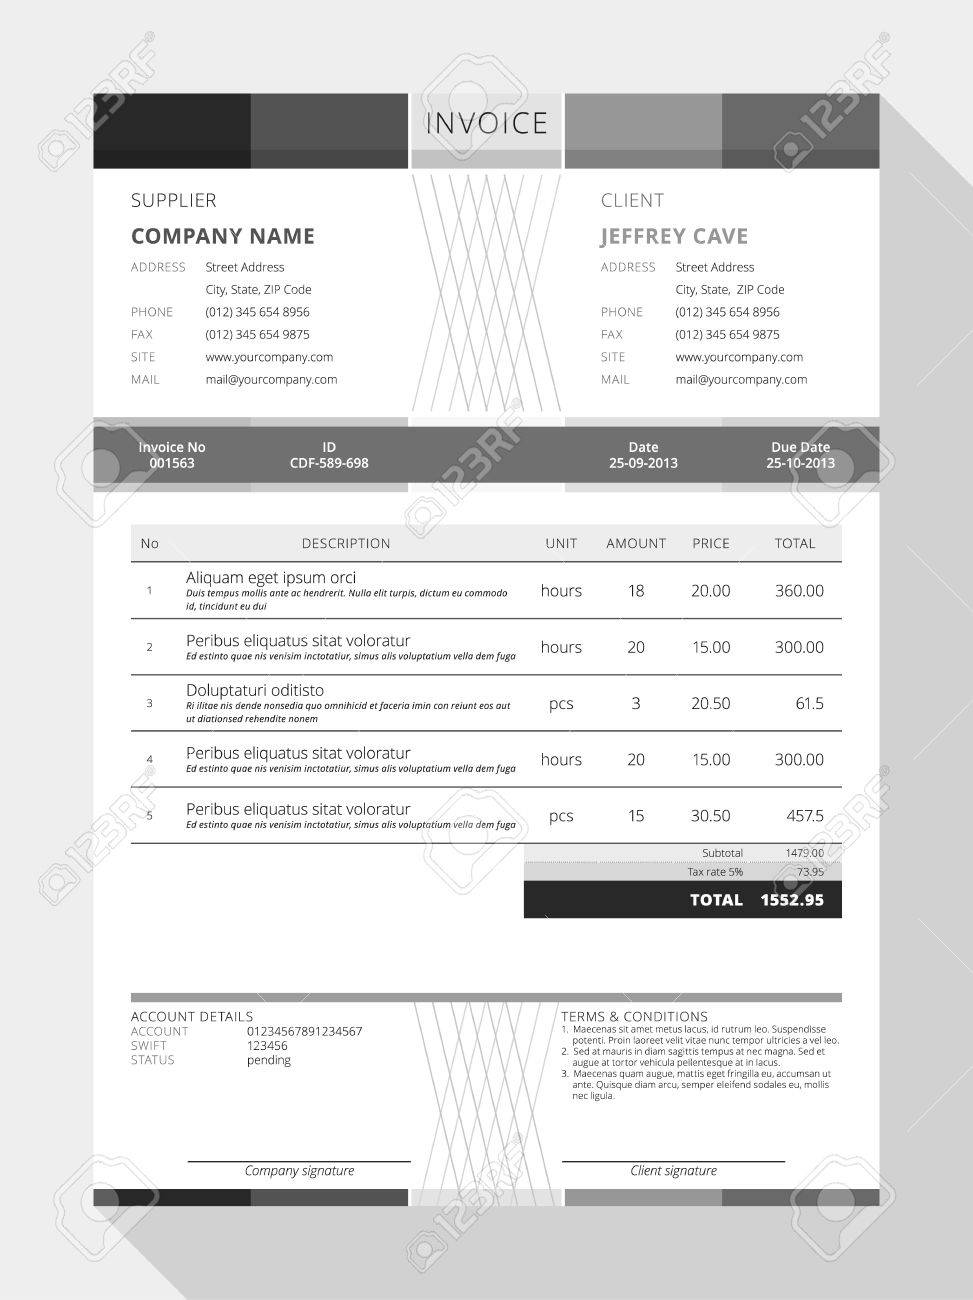 Hucareus  Winning Design An Invoice  Professional Graphic Design Invoice  With Lovable Vector Customizable Invoice Form Template Design Vector   Design An Invoice With Delightful Invoice Quotation Also Quotation Invoice In Addition Invoice Prices For New Trucks And Template For Invoice For Services As Well As Receipt Of The Invoice Additionally Excel Invoice Form From Happytomco With Hucareus  Lovable Design An Invoice  Professional Graphic Design Invoice  With Delightful Vector Customizable Invoice Form Template Design Vector   Design An Invoice And Winning Invoice Quotation Also Quotation Invoice In Addition Invoice Prices For New Trucks From Happytomco